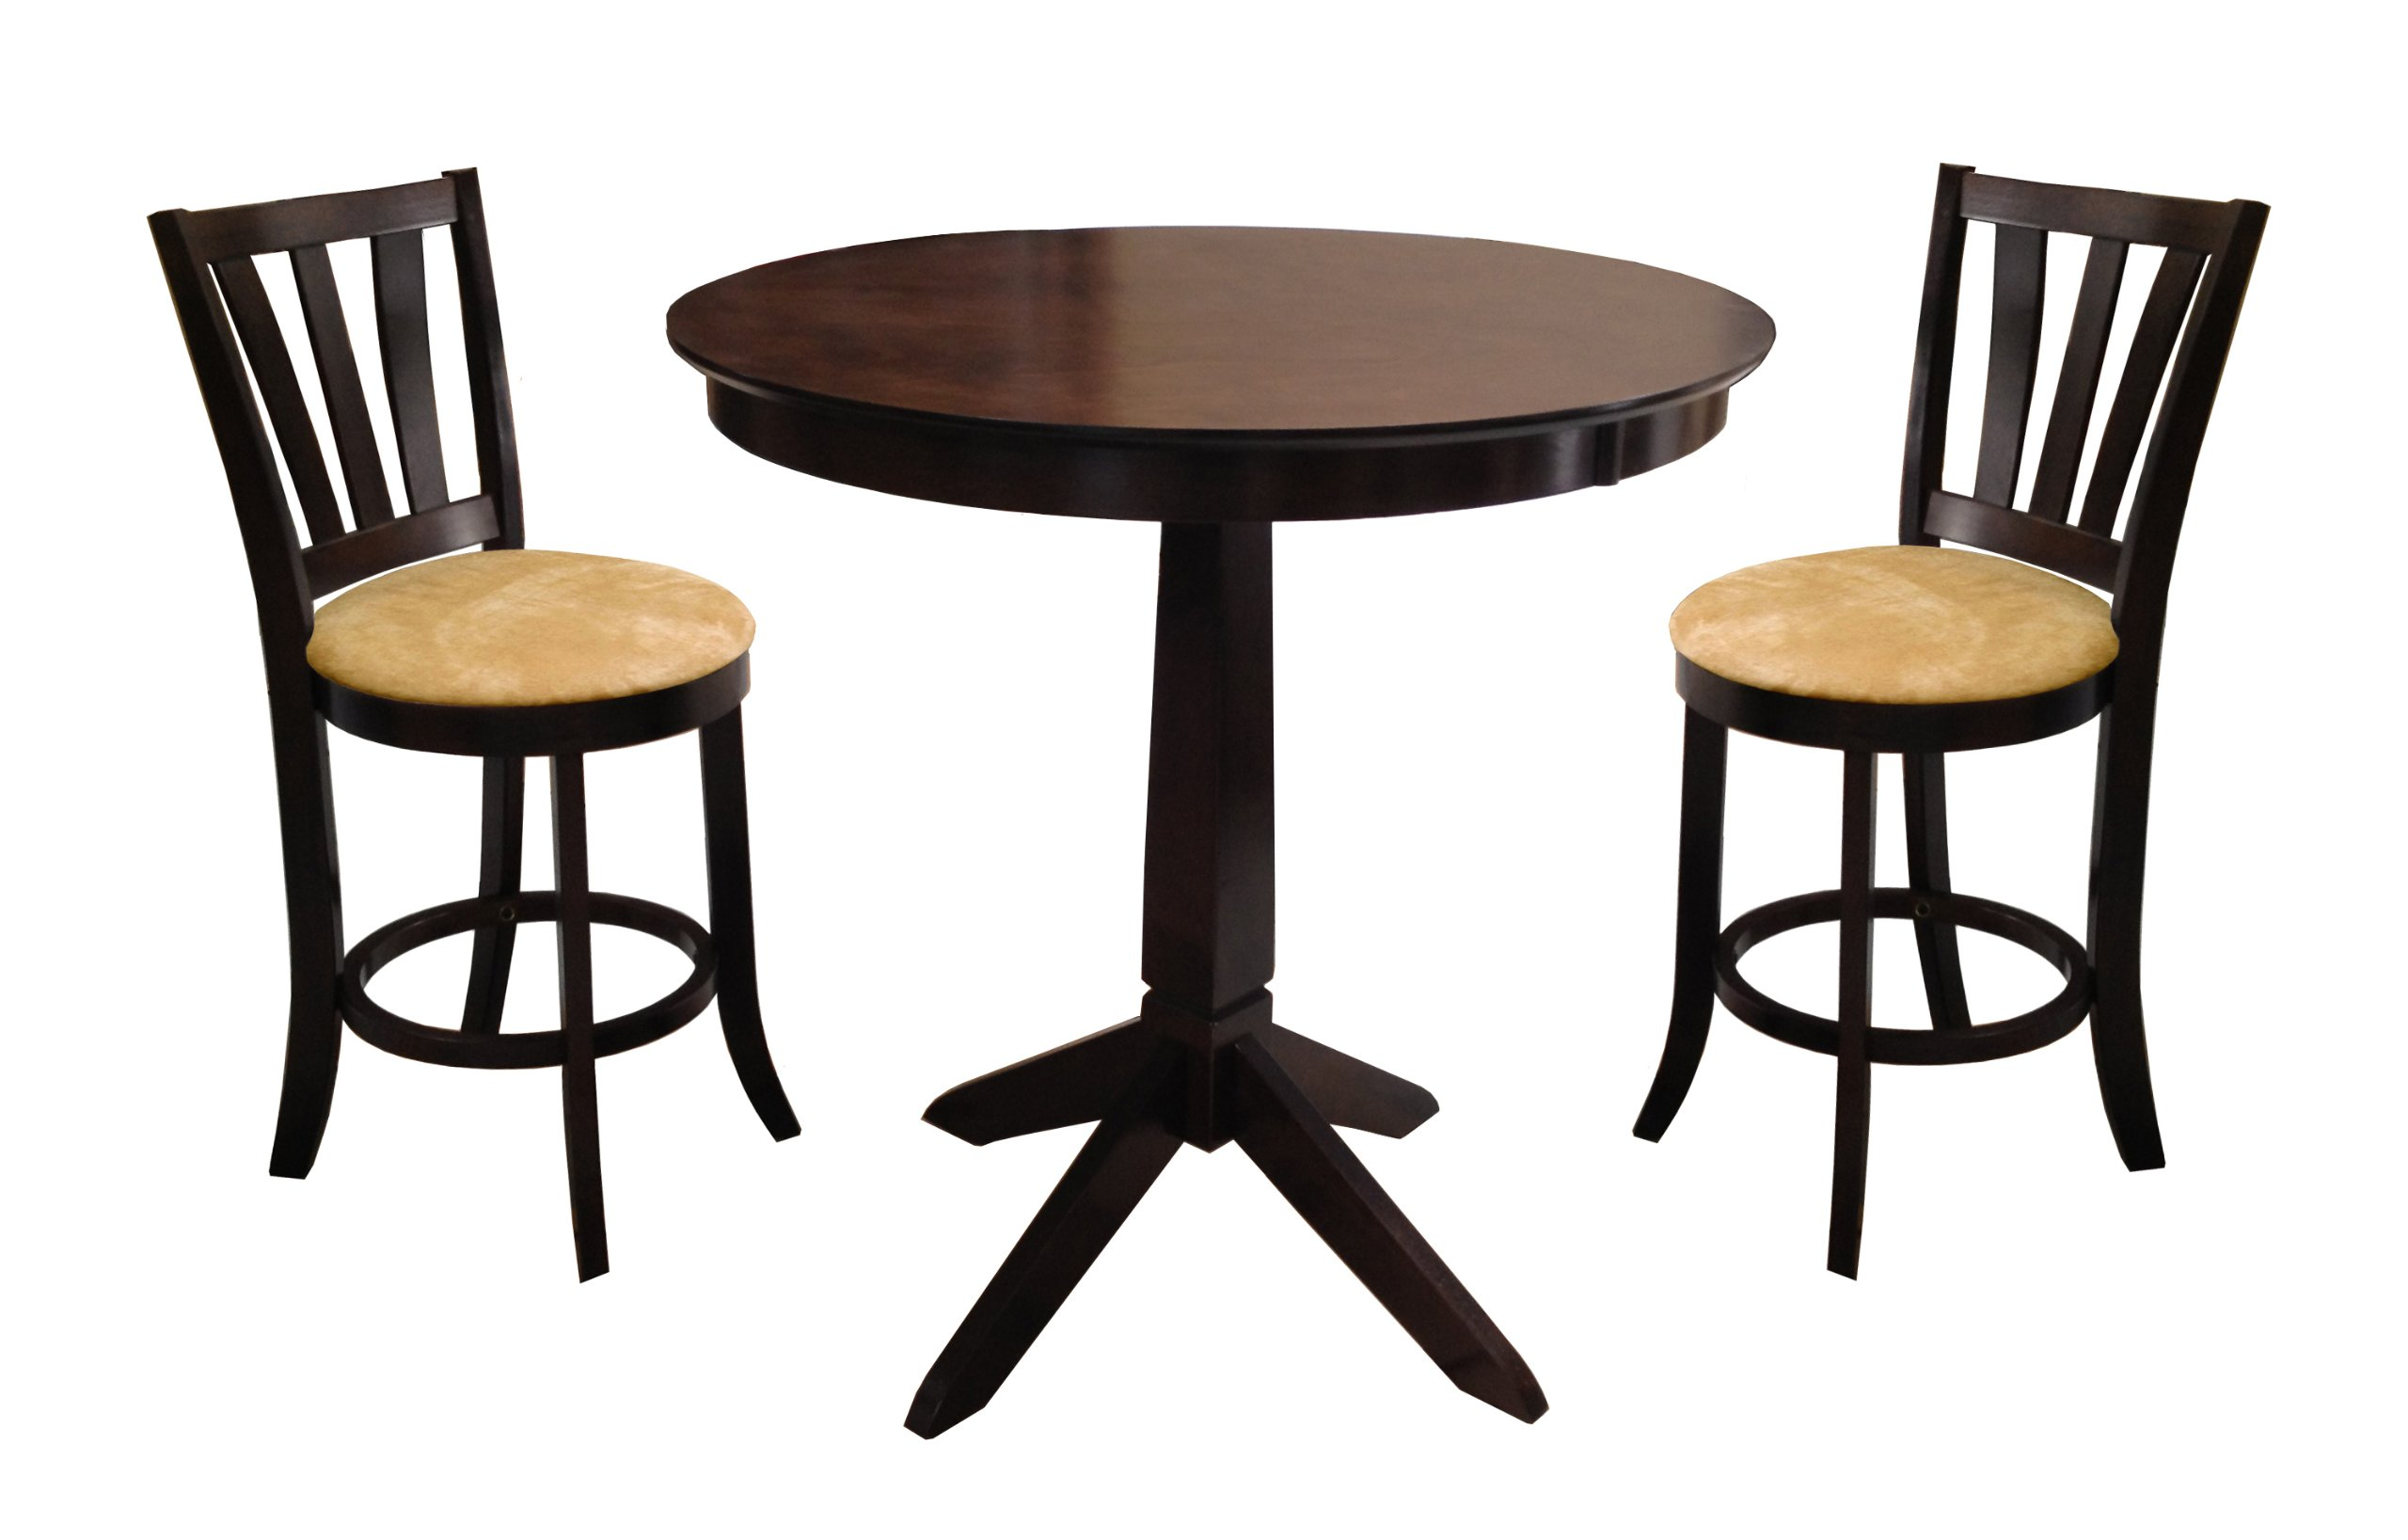 Espresso counter height dining bar table and 2 bar stools for Table height stools